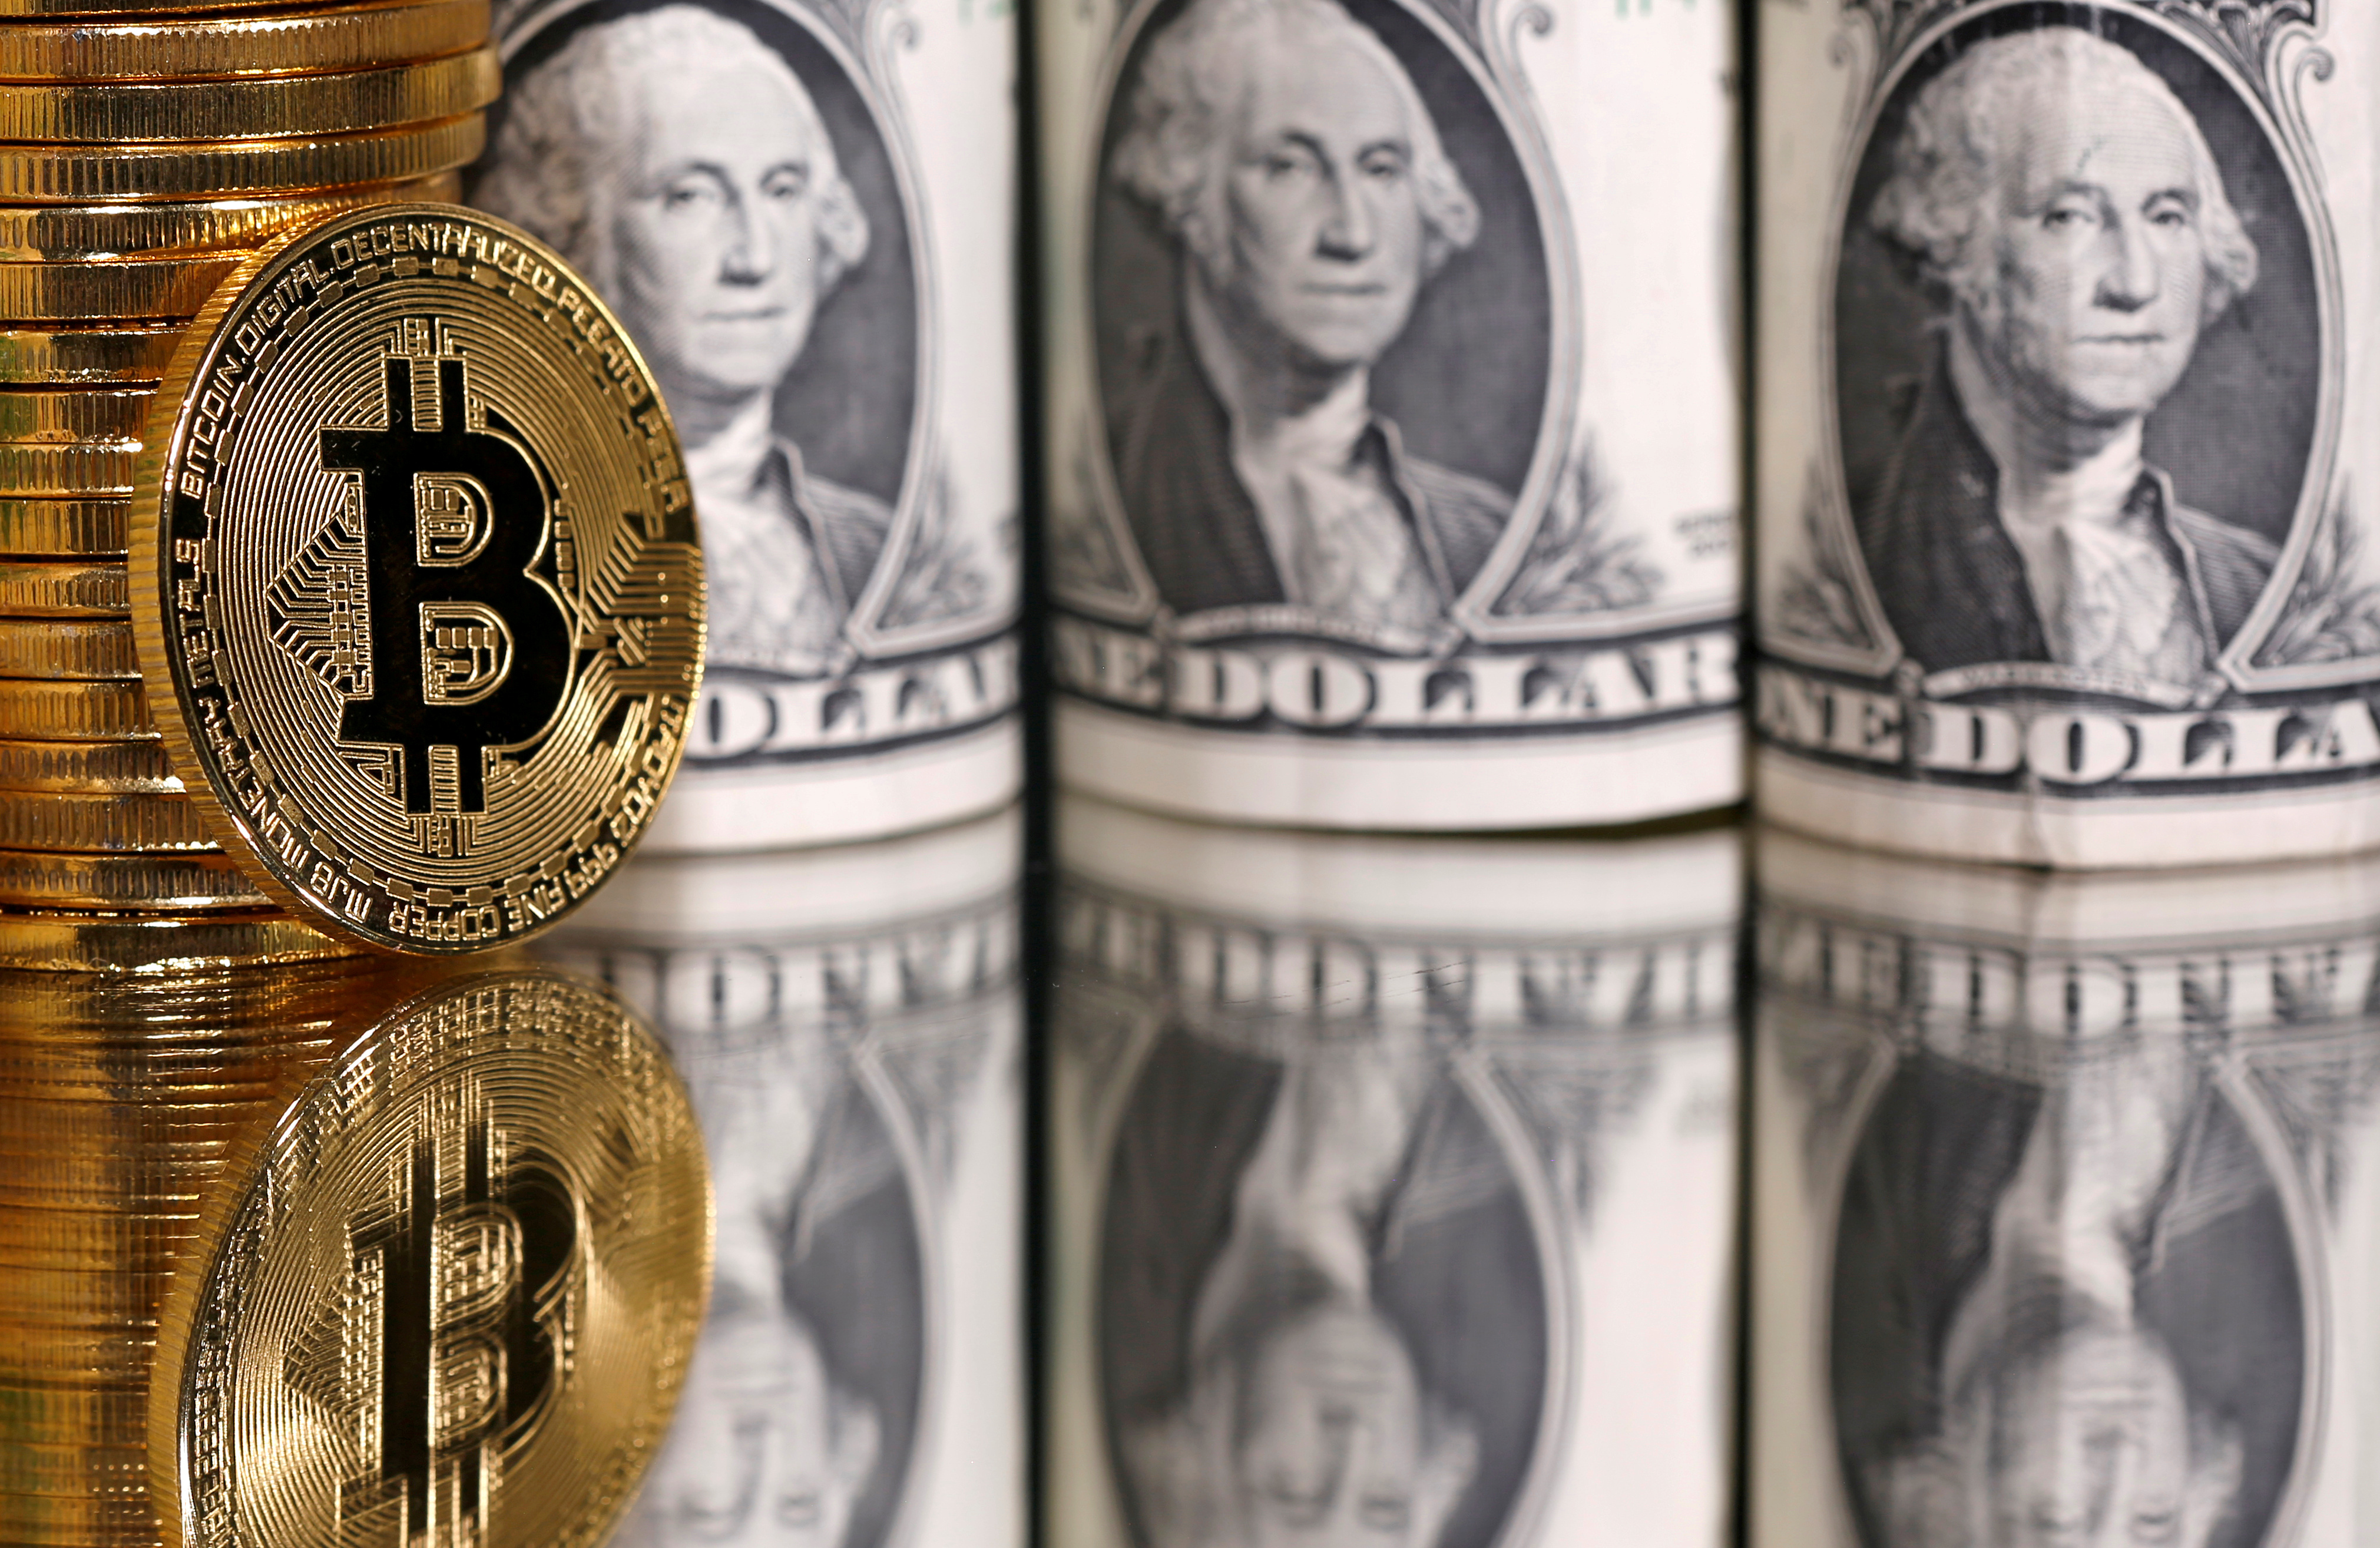 Representations of bitcoin and U.S. dollar banknotes are seen in this illustration taken January 6, 2020. REUTERS/Dado Ruvic/Illustration